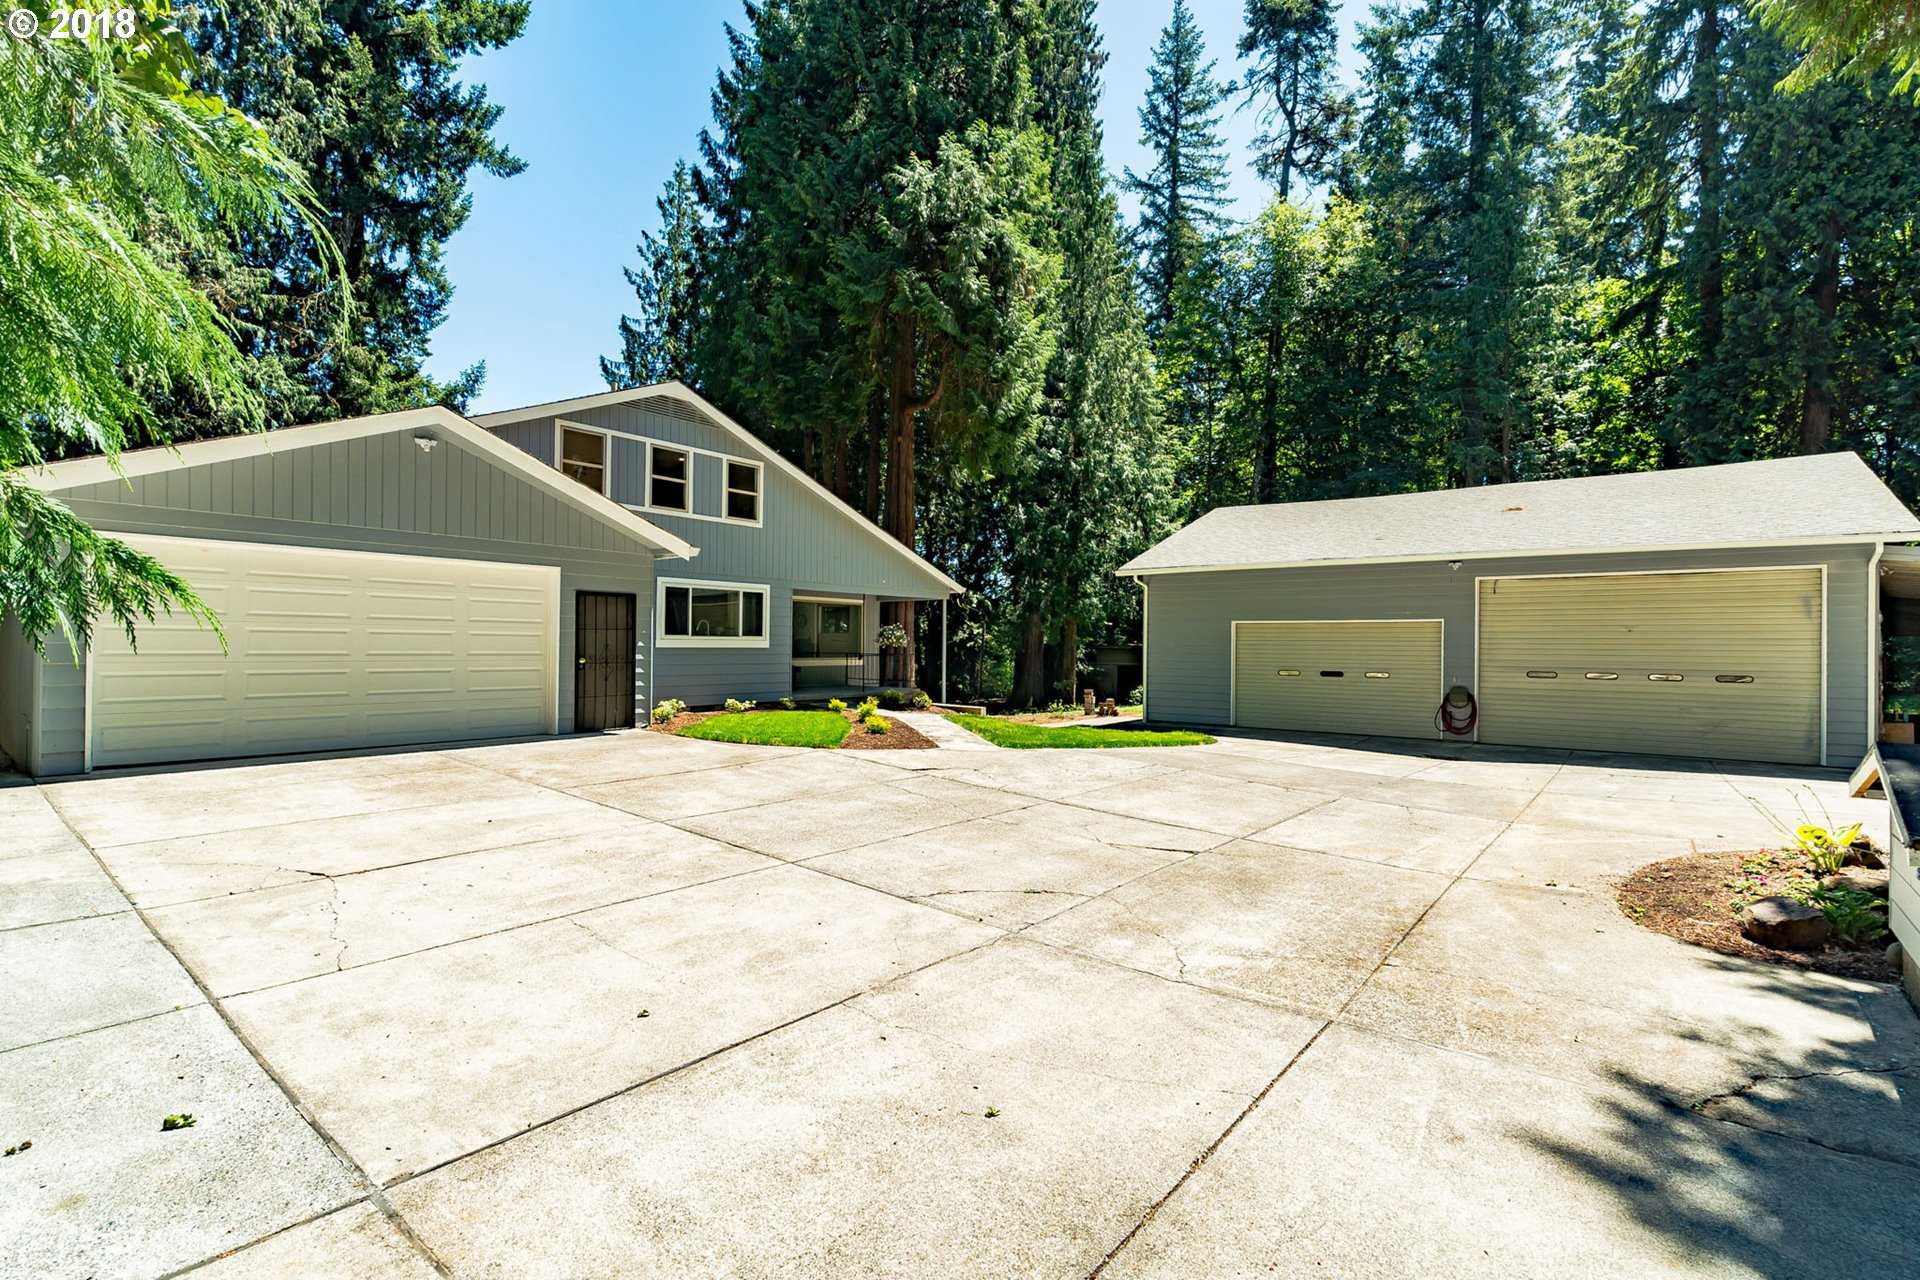 $865,000 - 5Br/5Ba -  for Sale in West Linn